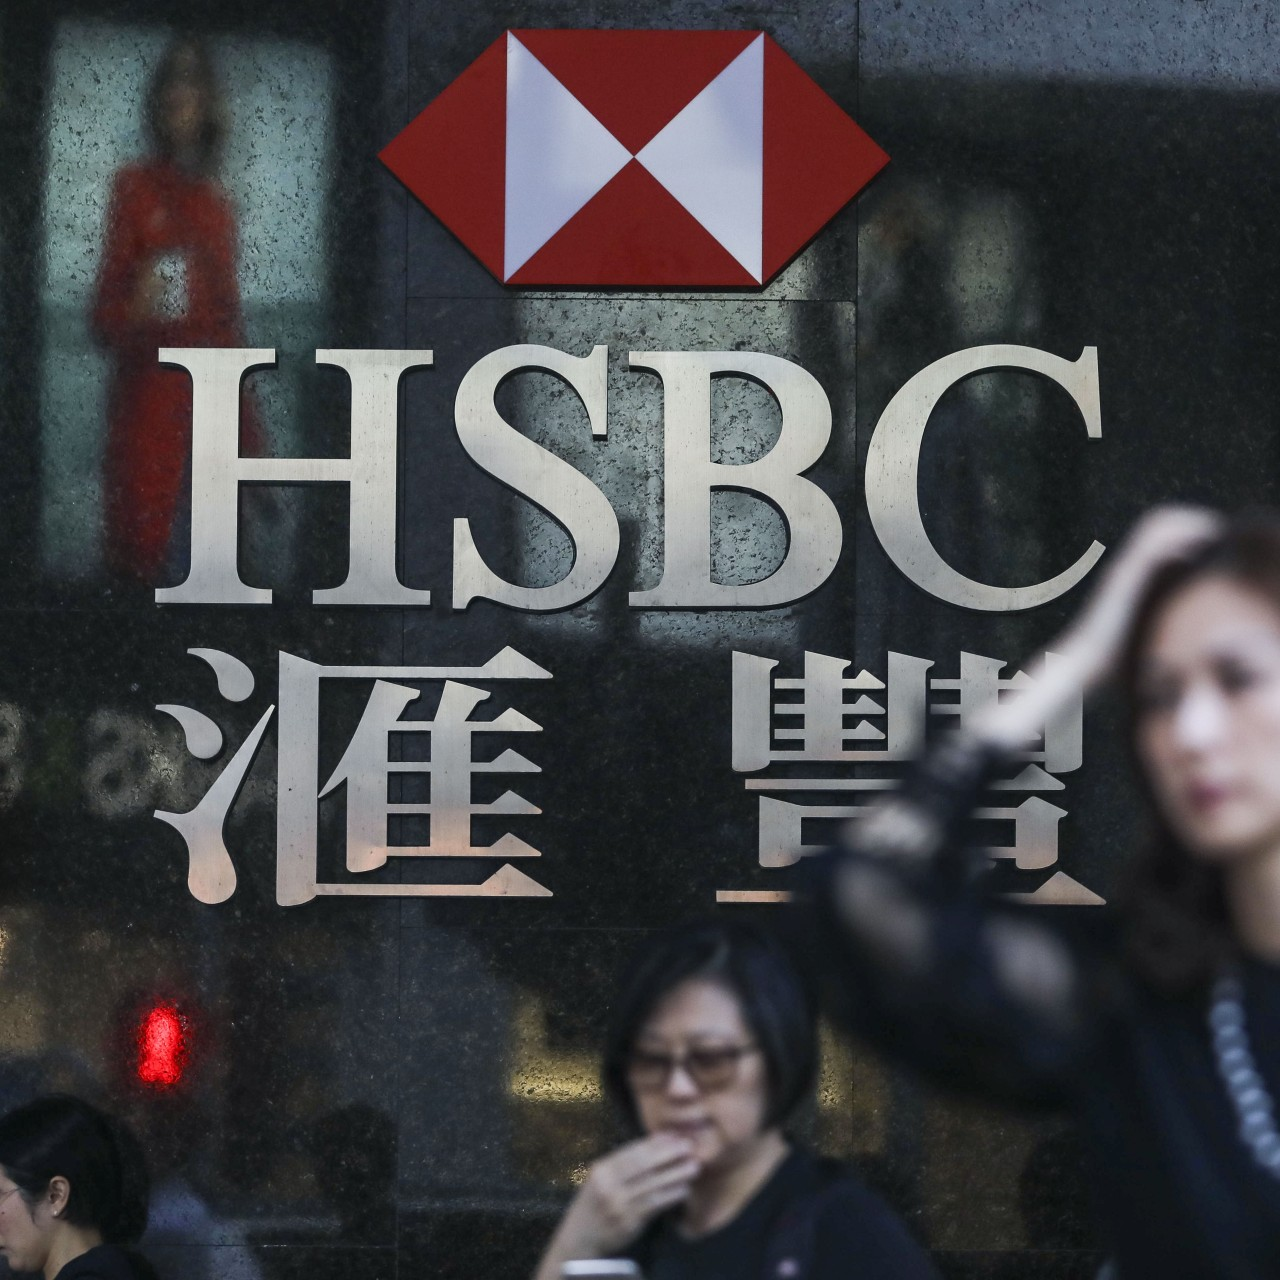 HSBC strikes back in mobile payment war, lifts PayMe monthly top-up